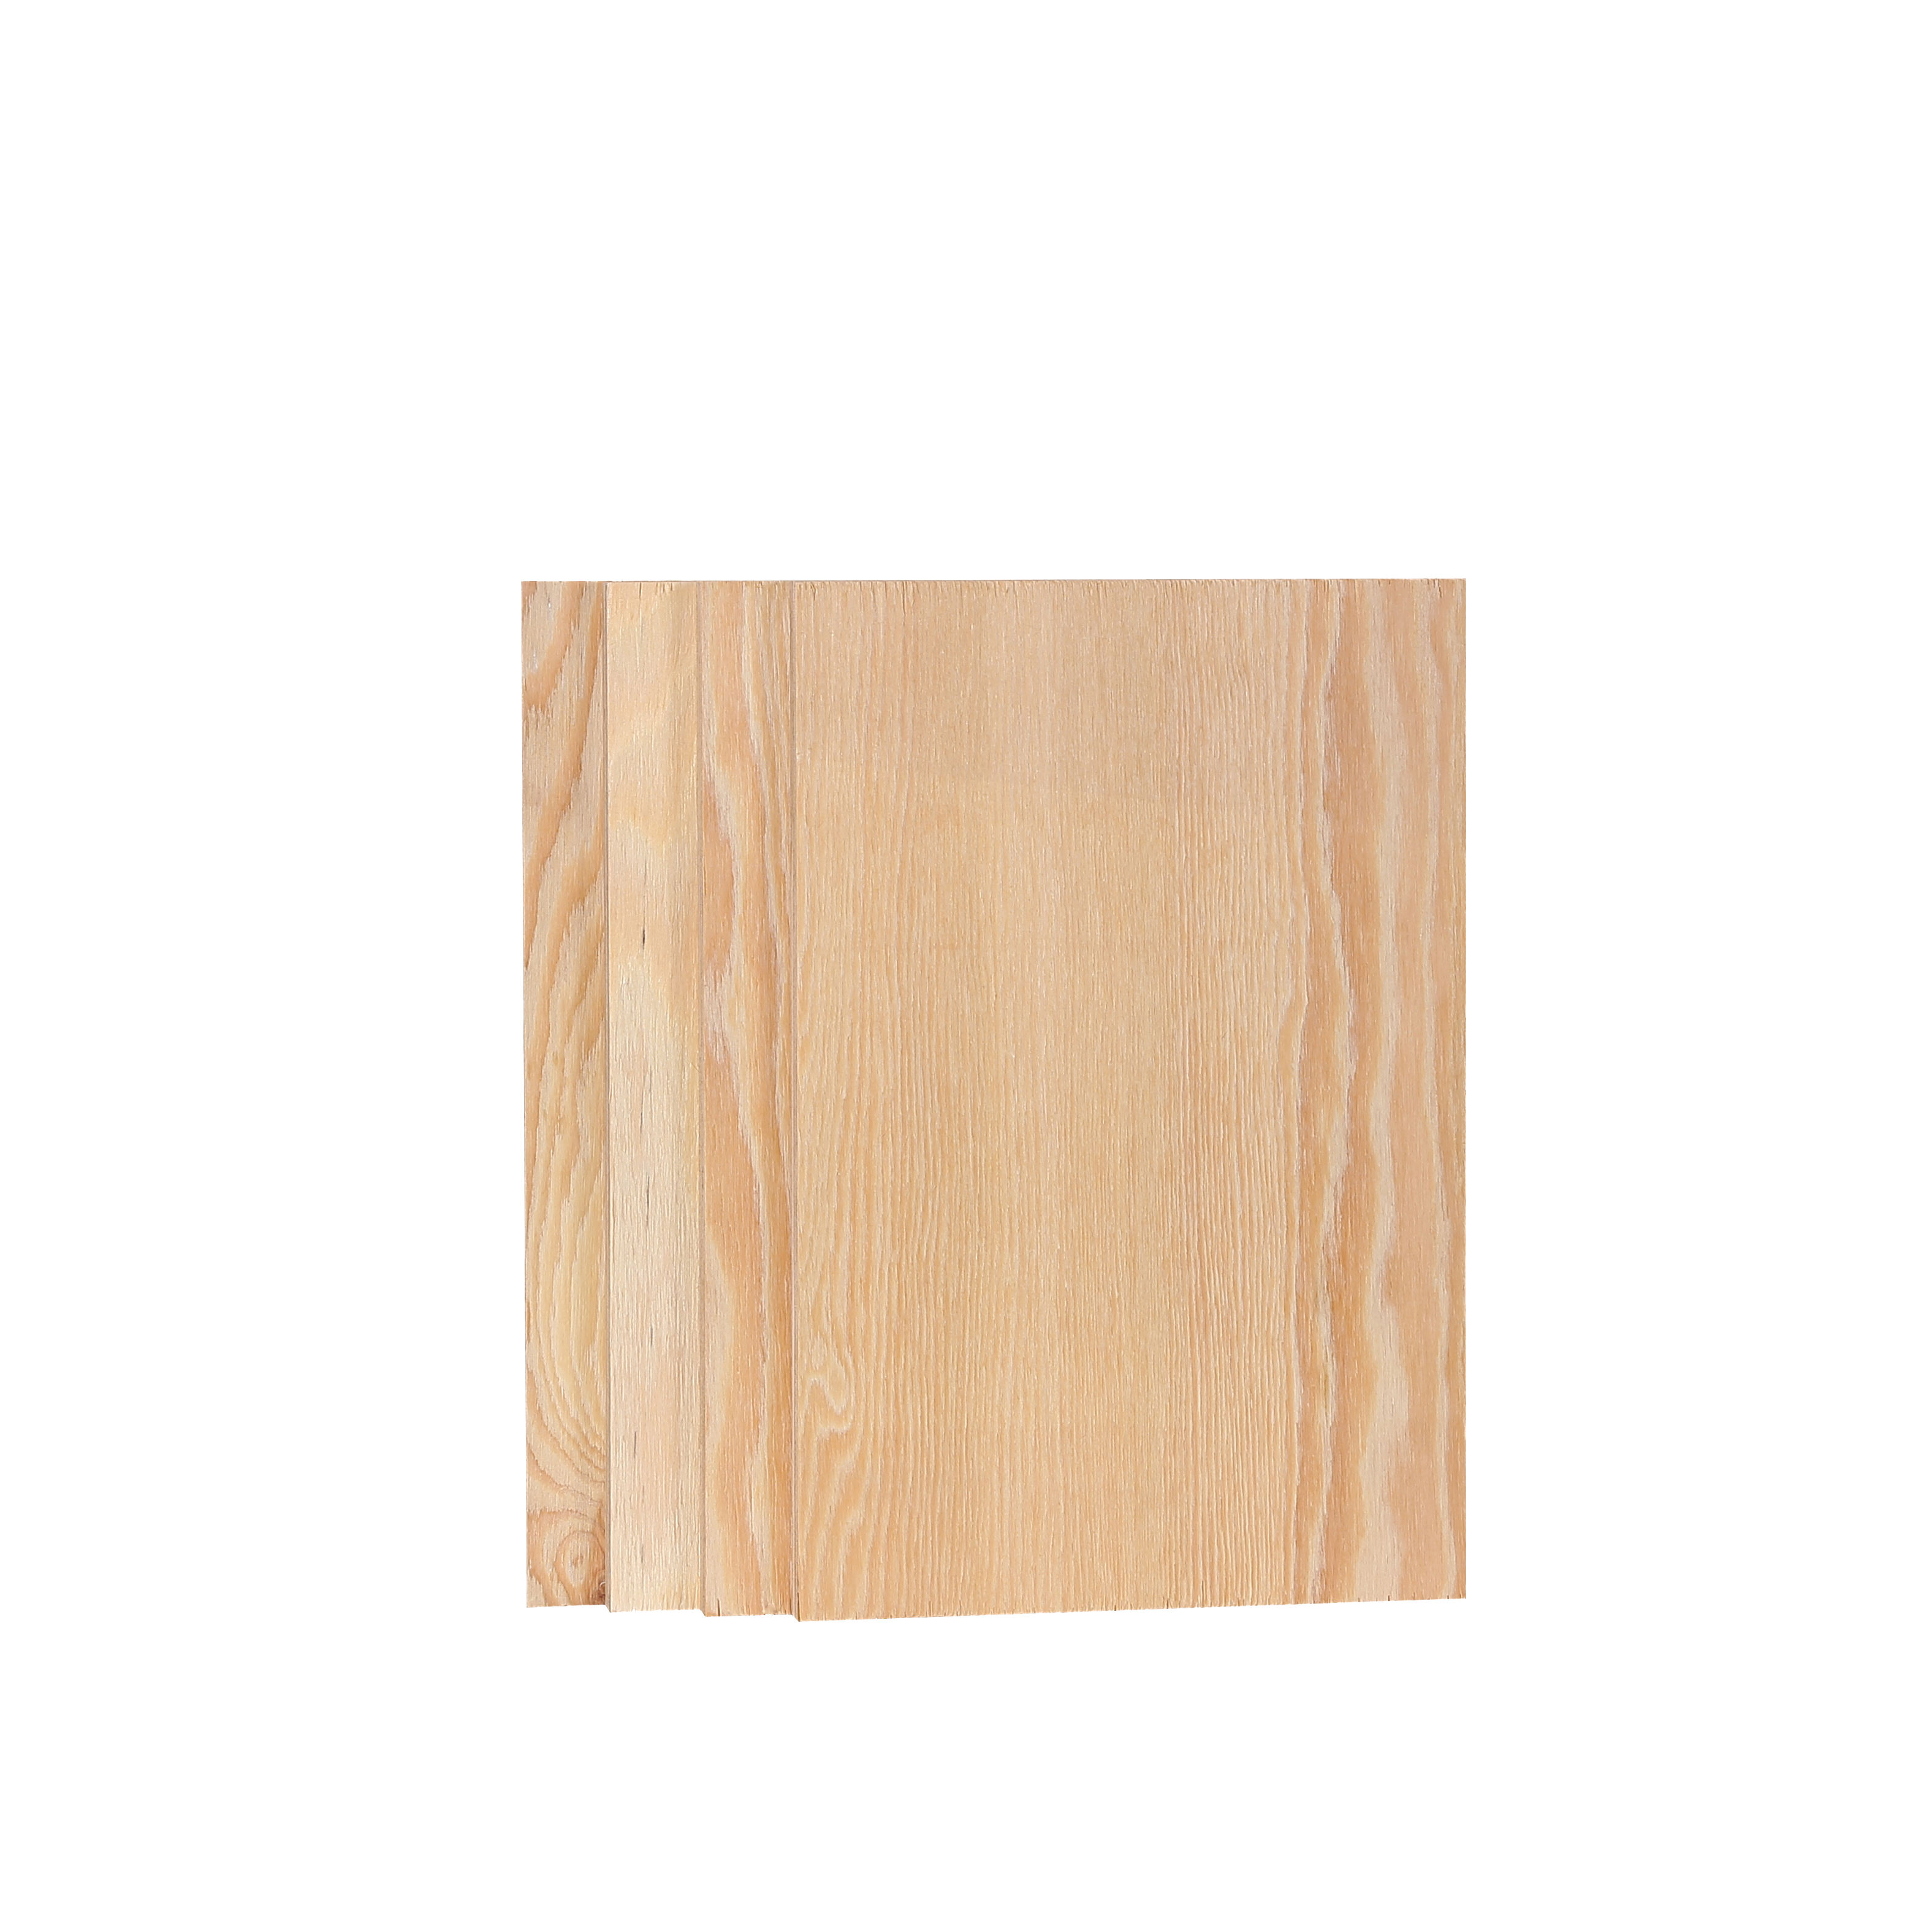 Larch exterior plywood supplier waterproof 12mm JAS SP TS C-D All Larch 5PLY for wall plywood board